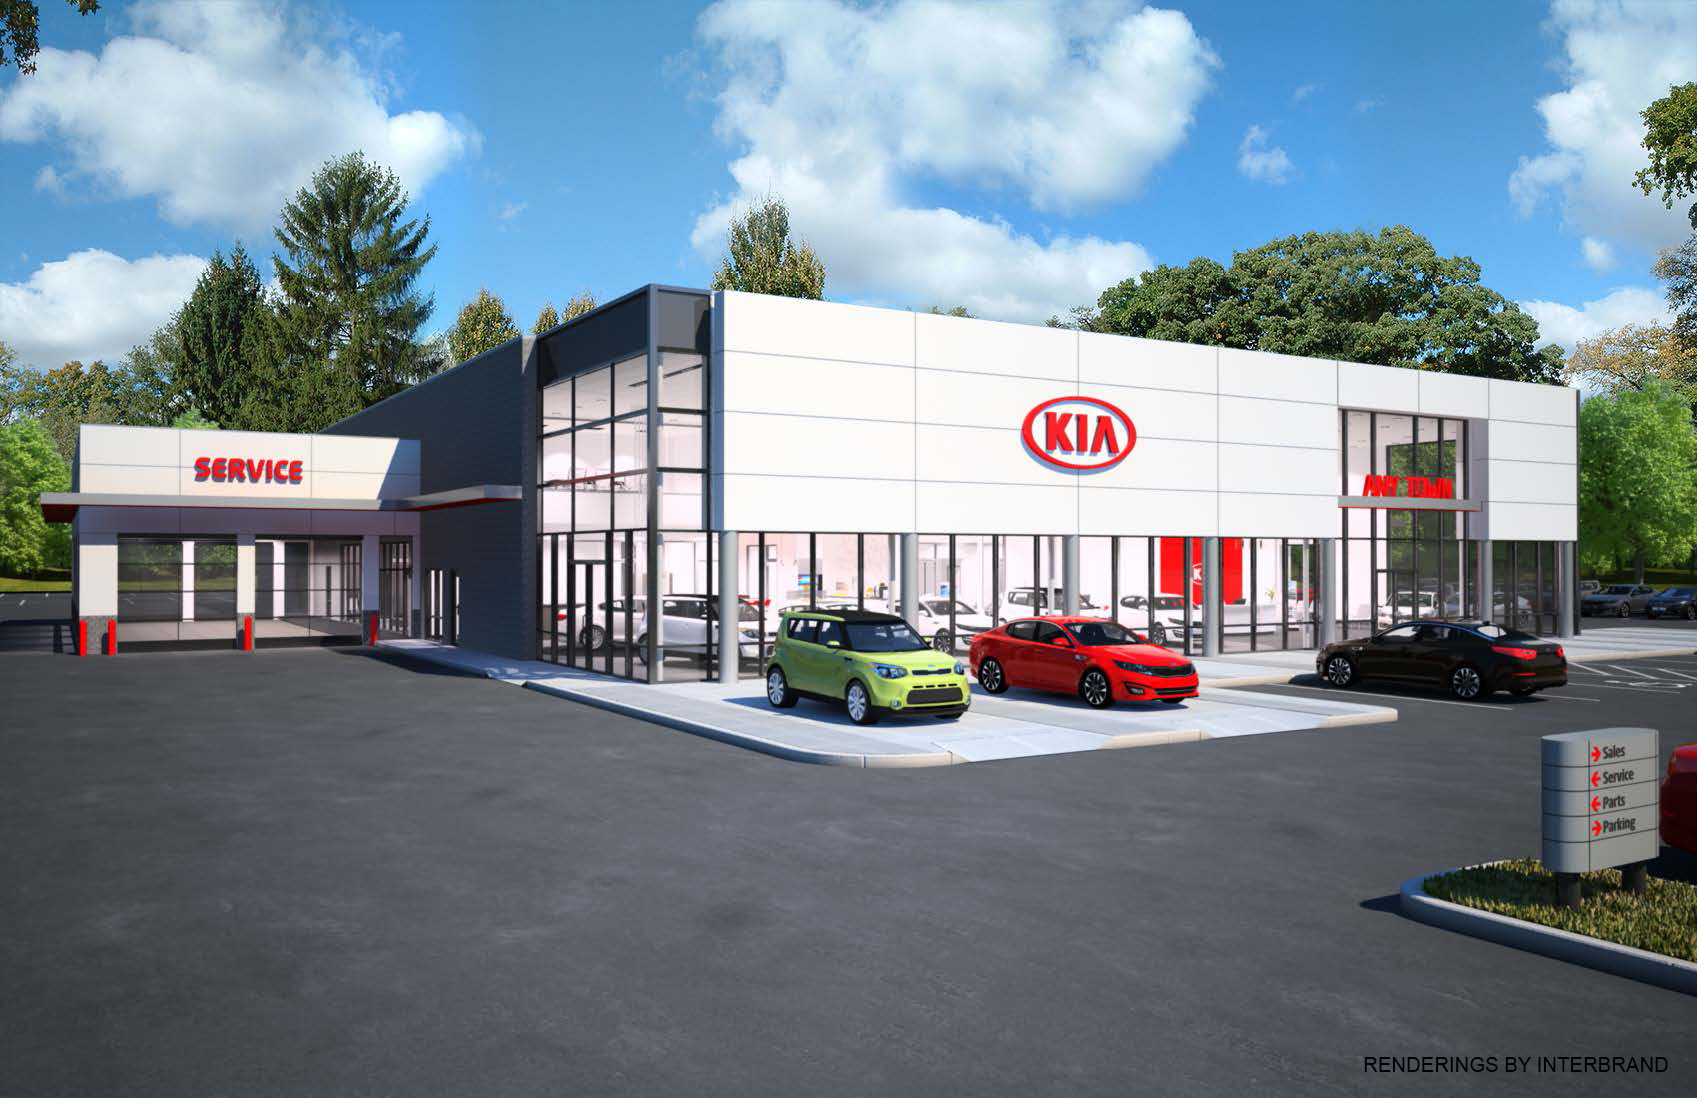 [] North Star Kia_Renderings_01.jpg